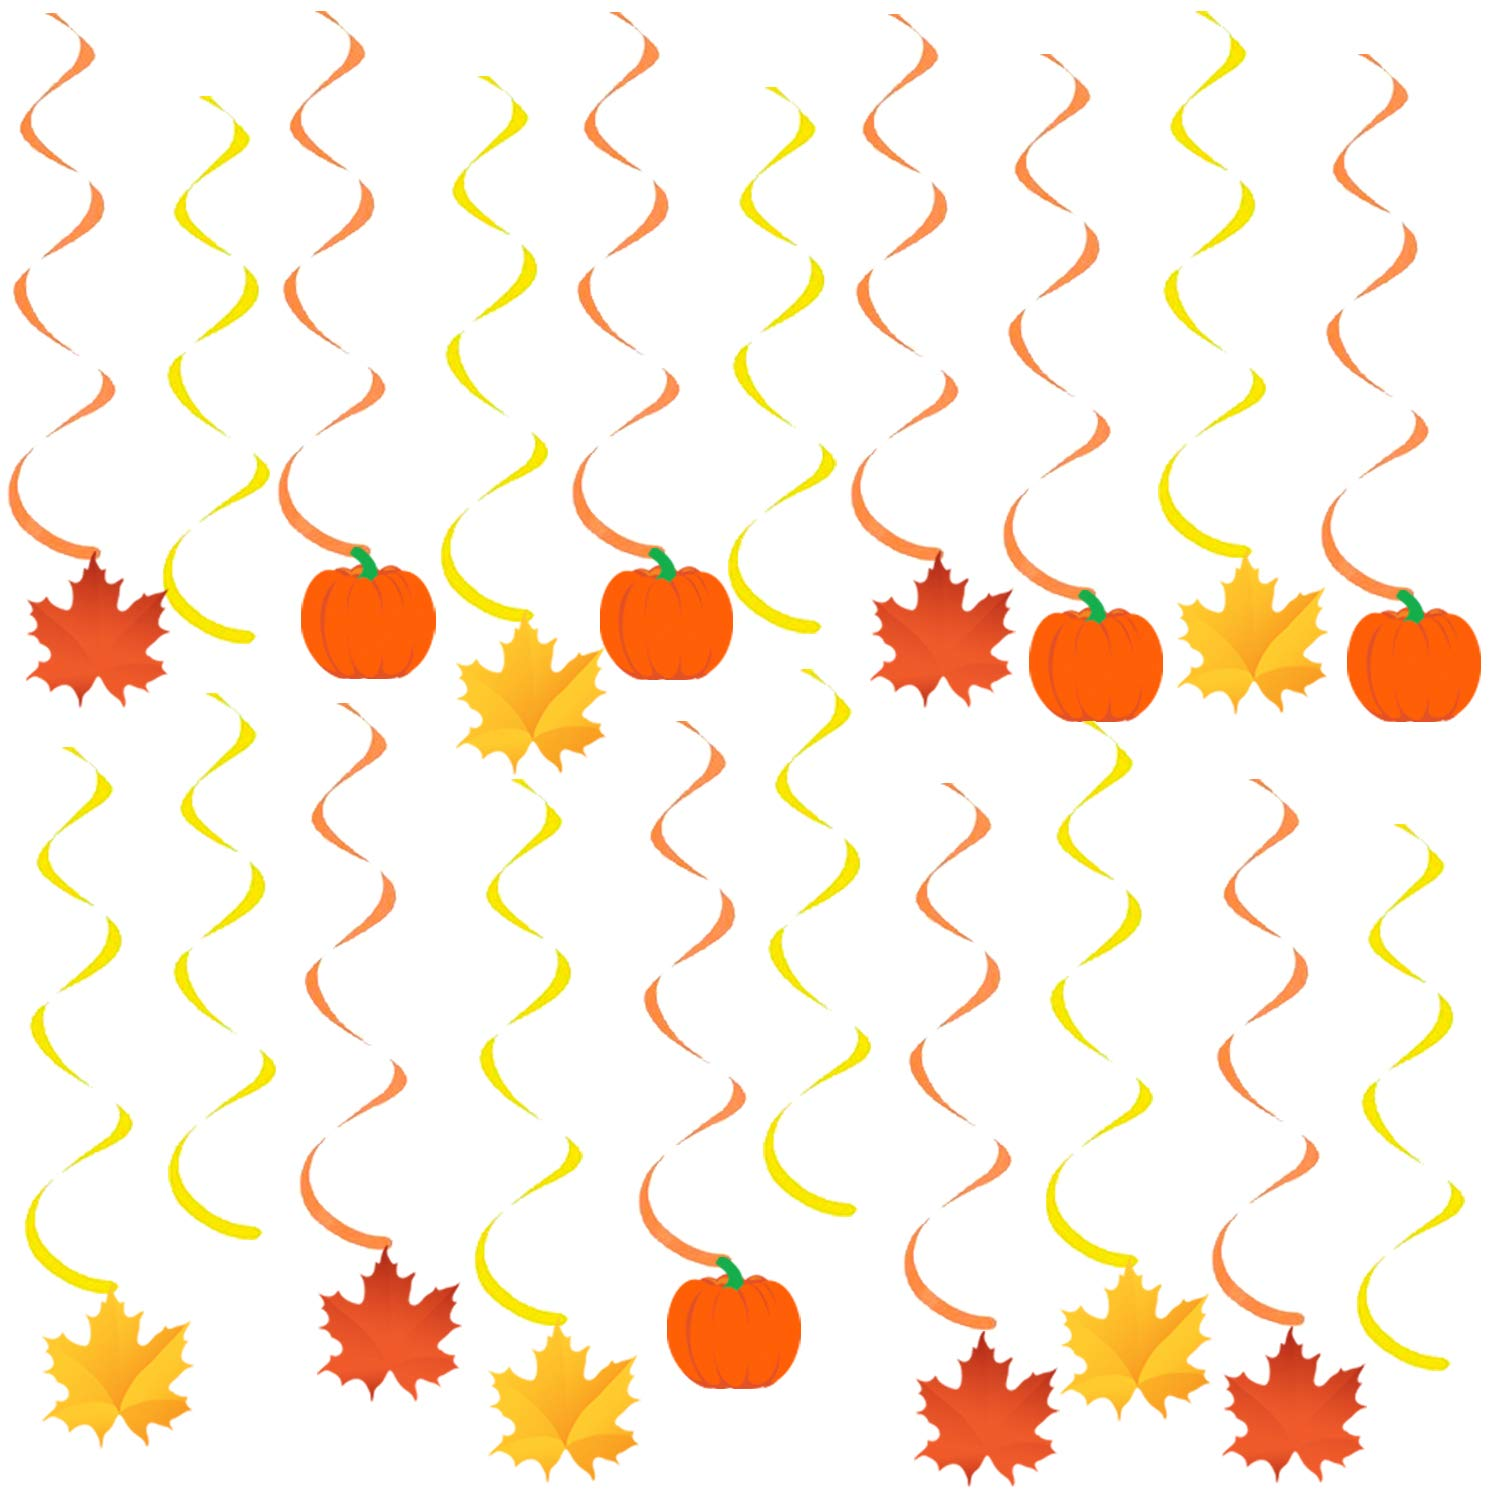 Autumn Hanging Swirls Thanksgiving Decorations – Pack of 35, Pumpkin and Maple Leaf Fall Themed Decorations Supplies | No DIY Required | Great for Birthday Party, Outdoor Garden, Home Office Decor Kit